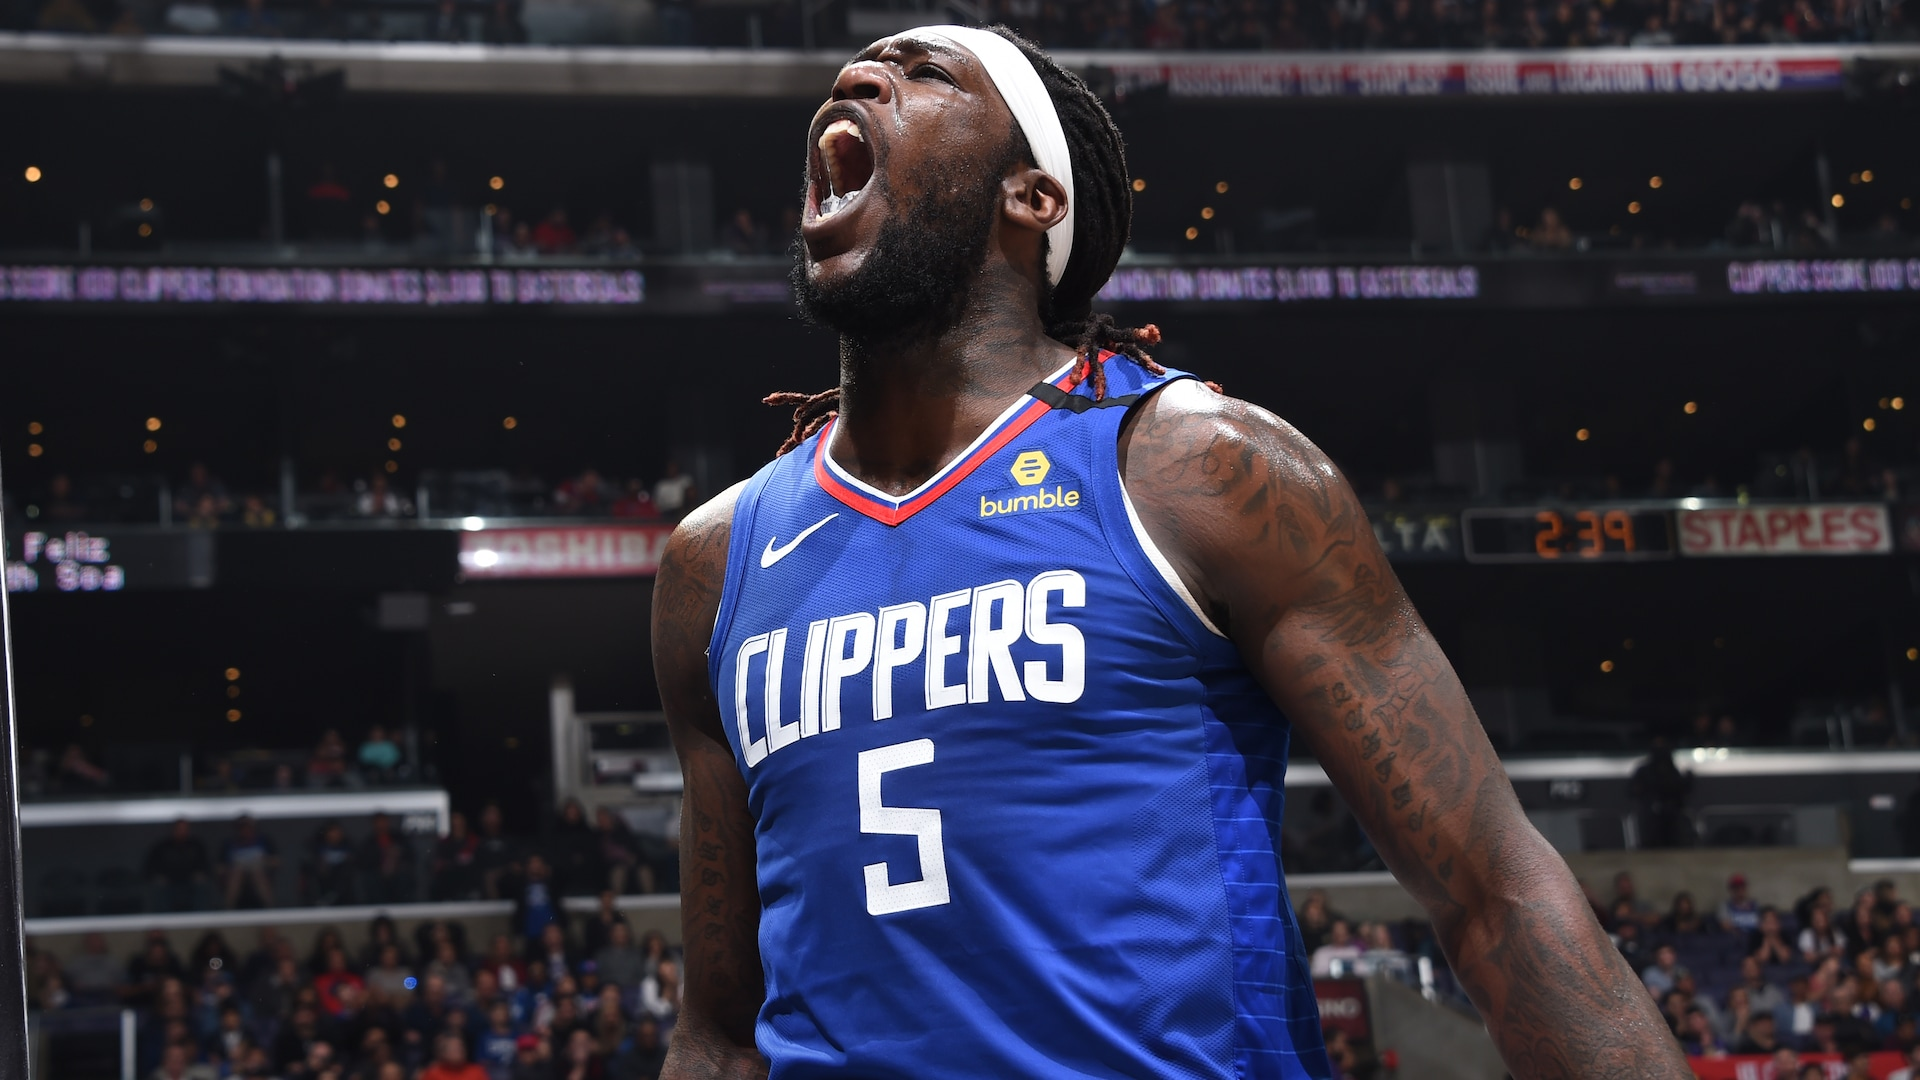 Clippers' Montrezl Harrell wins 2019-20 Kia NBA Sixth Man Award